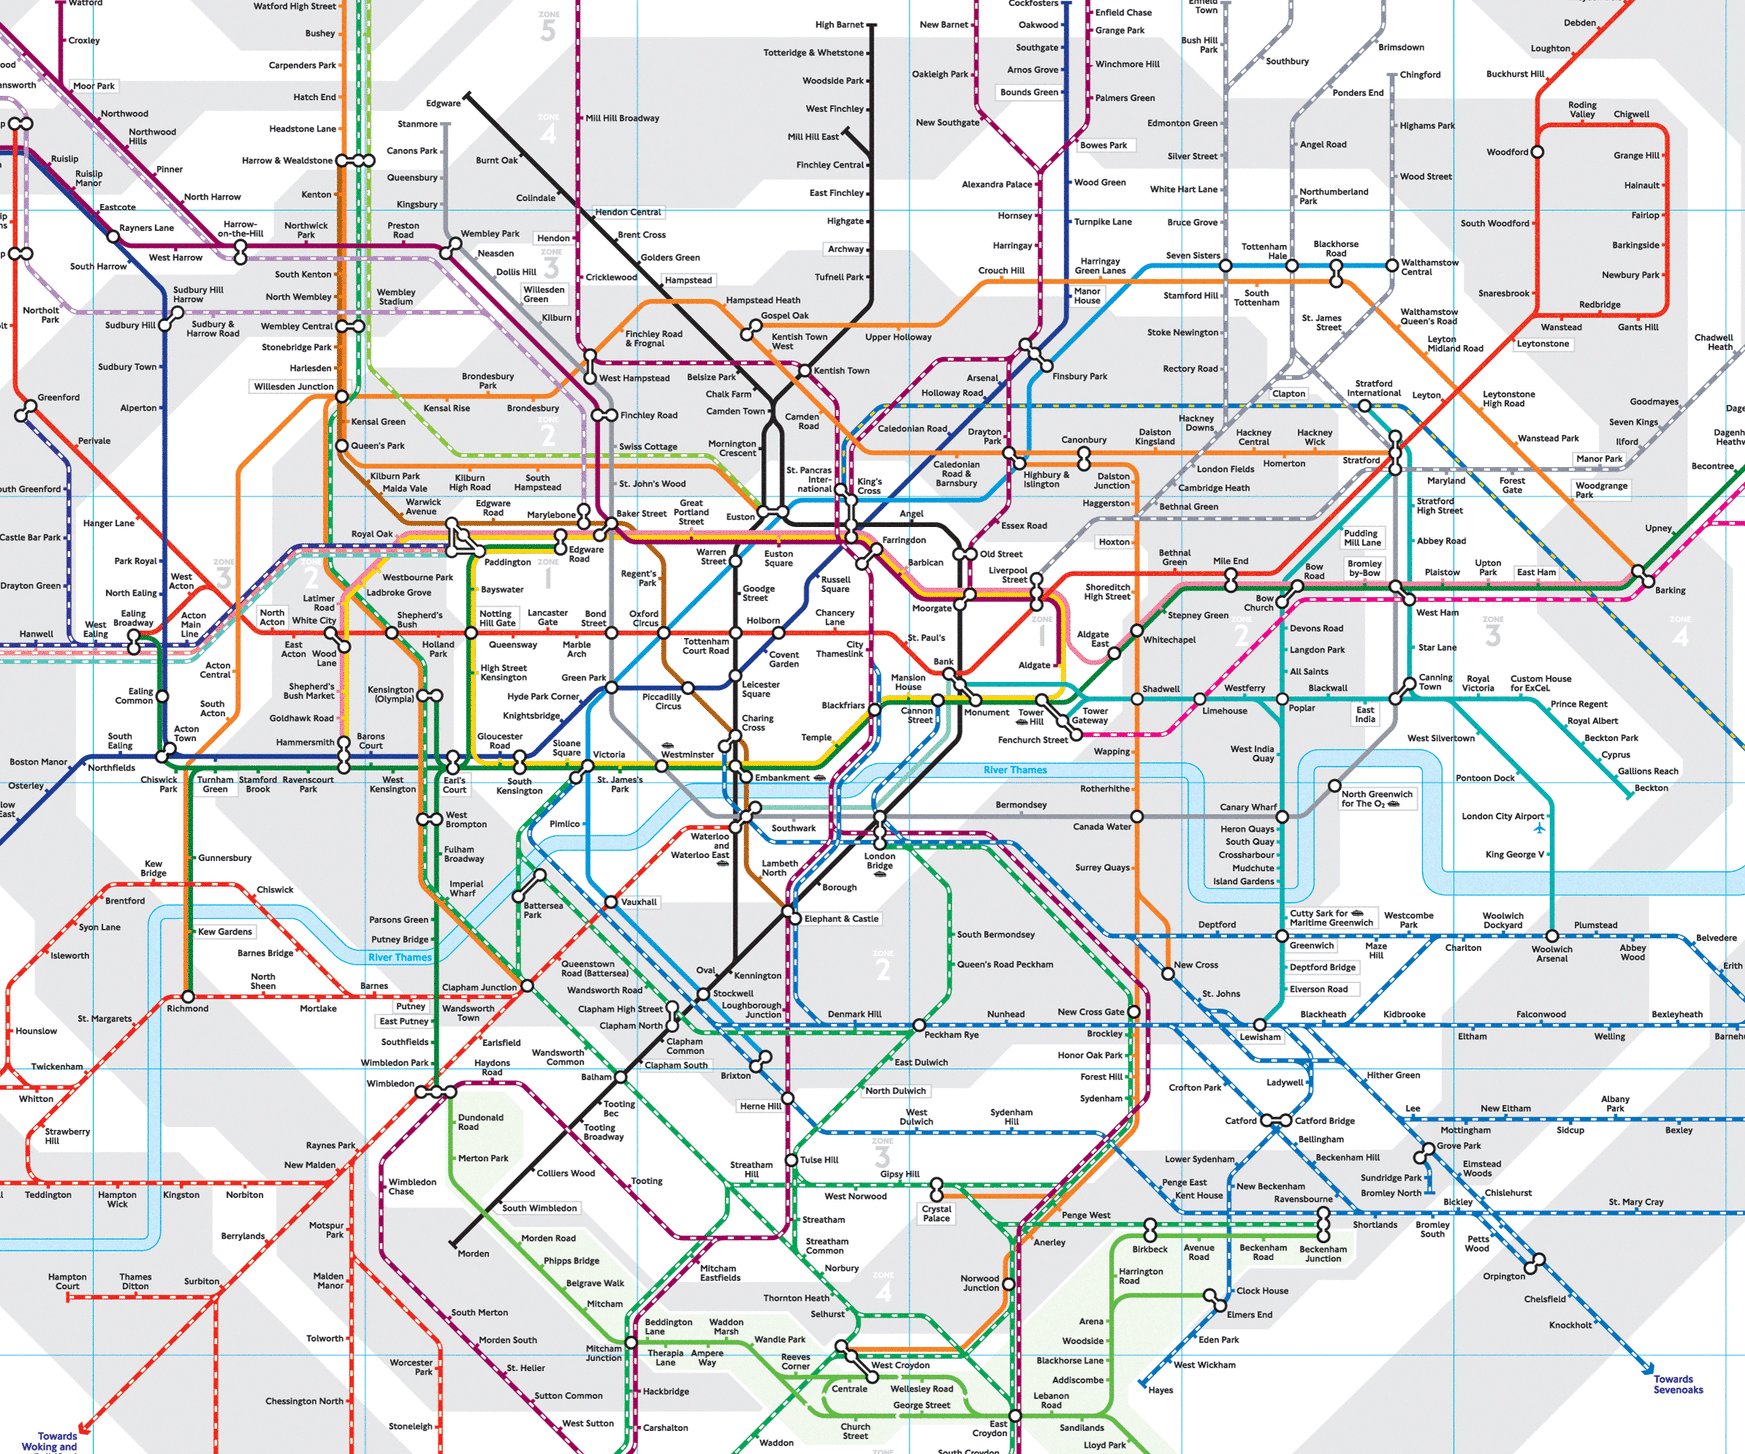 This map won't help you get to the rehearsal dinner, but it might help you get around London.